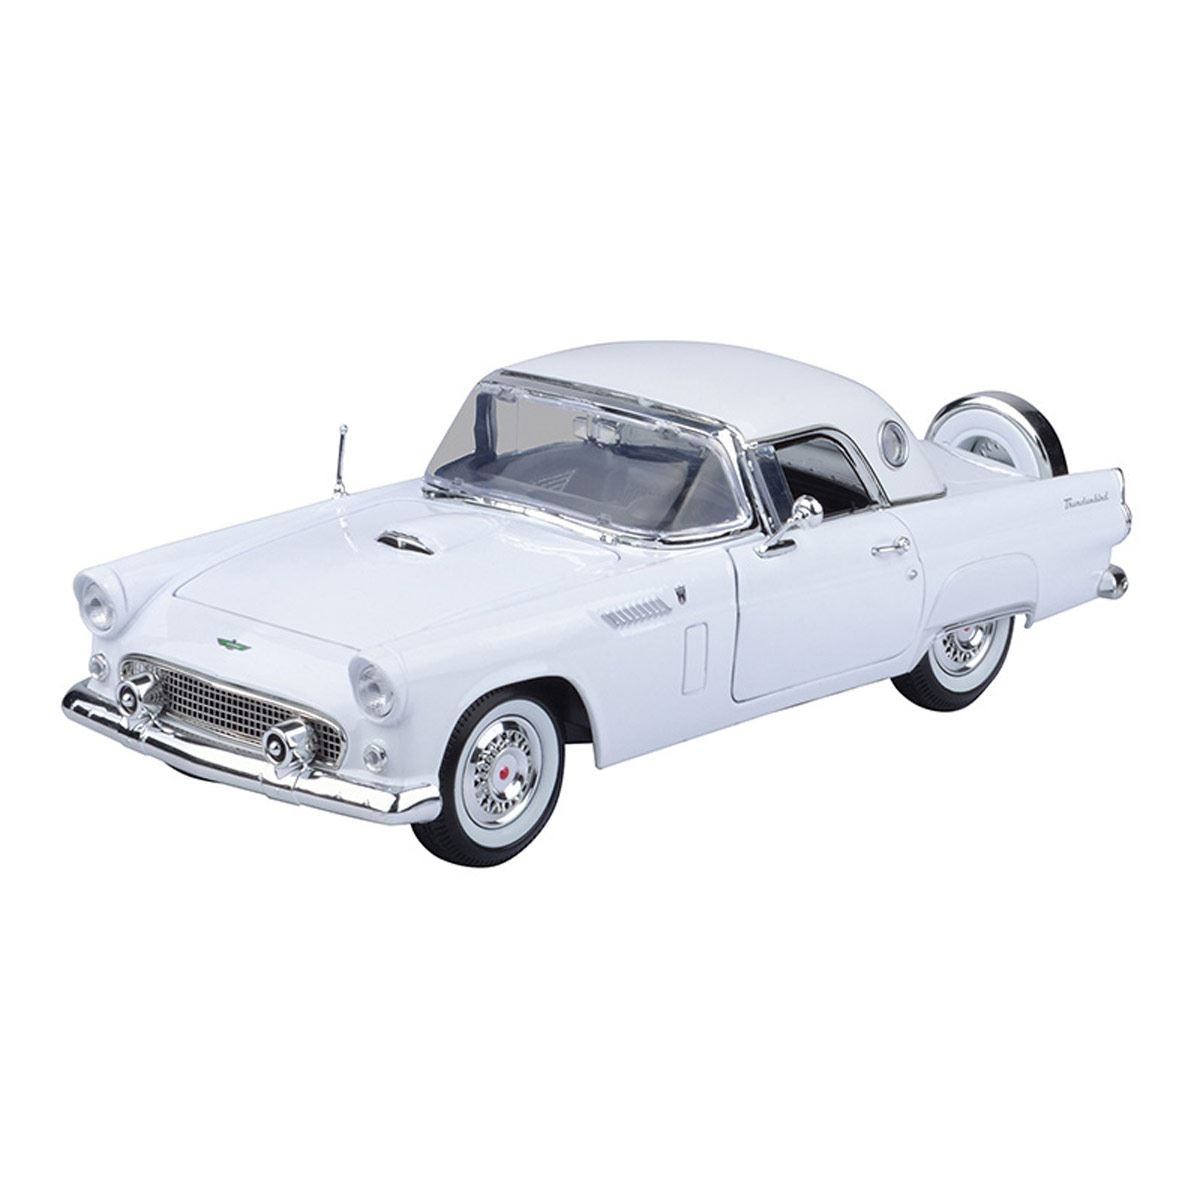 1956 ford thunderbird hard top  - Sanborns